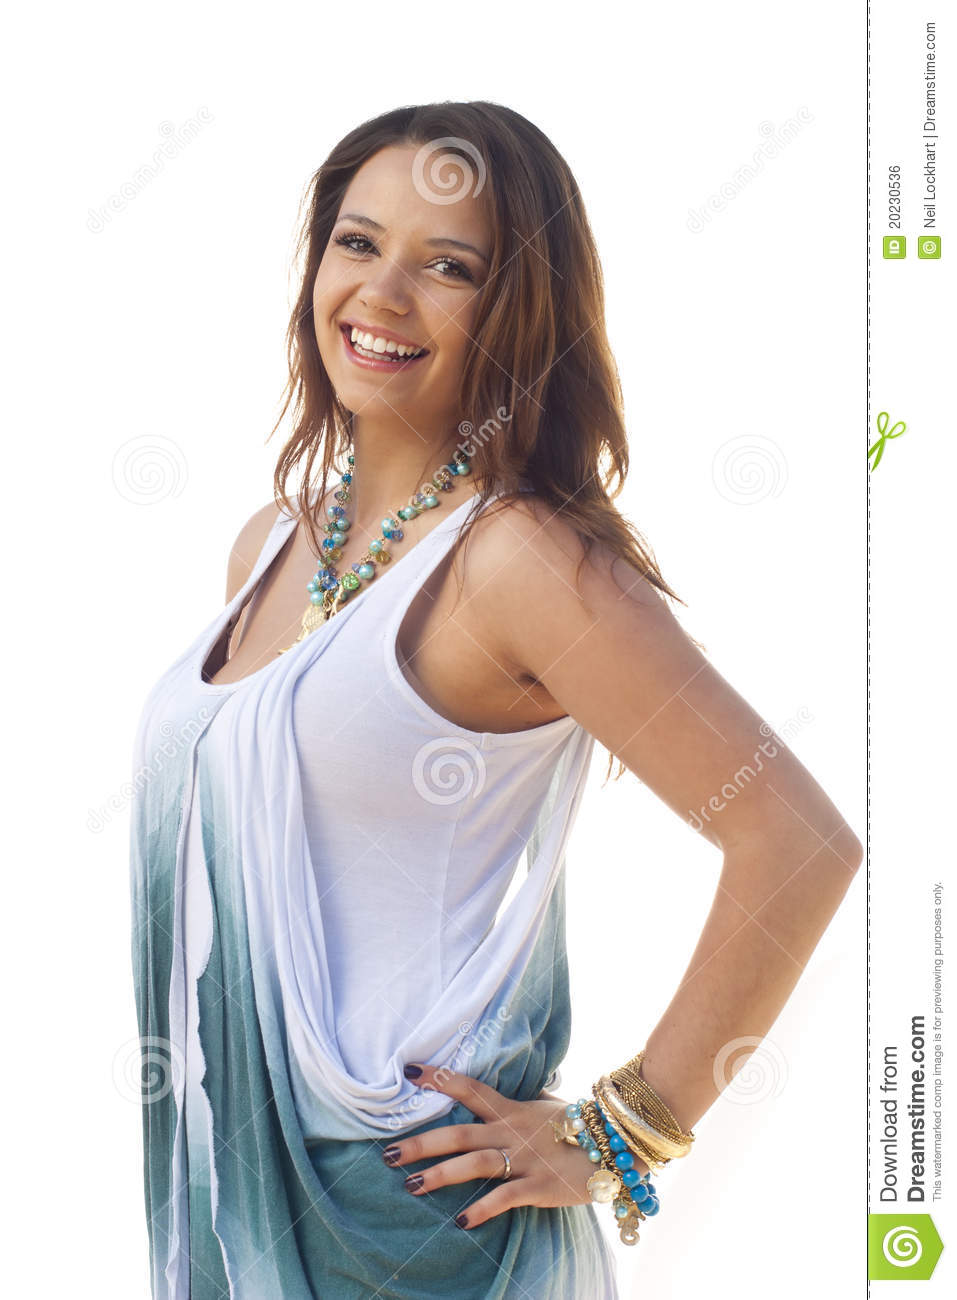 Cute Teen Girl Over White Royalty Free Stock Image Image